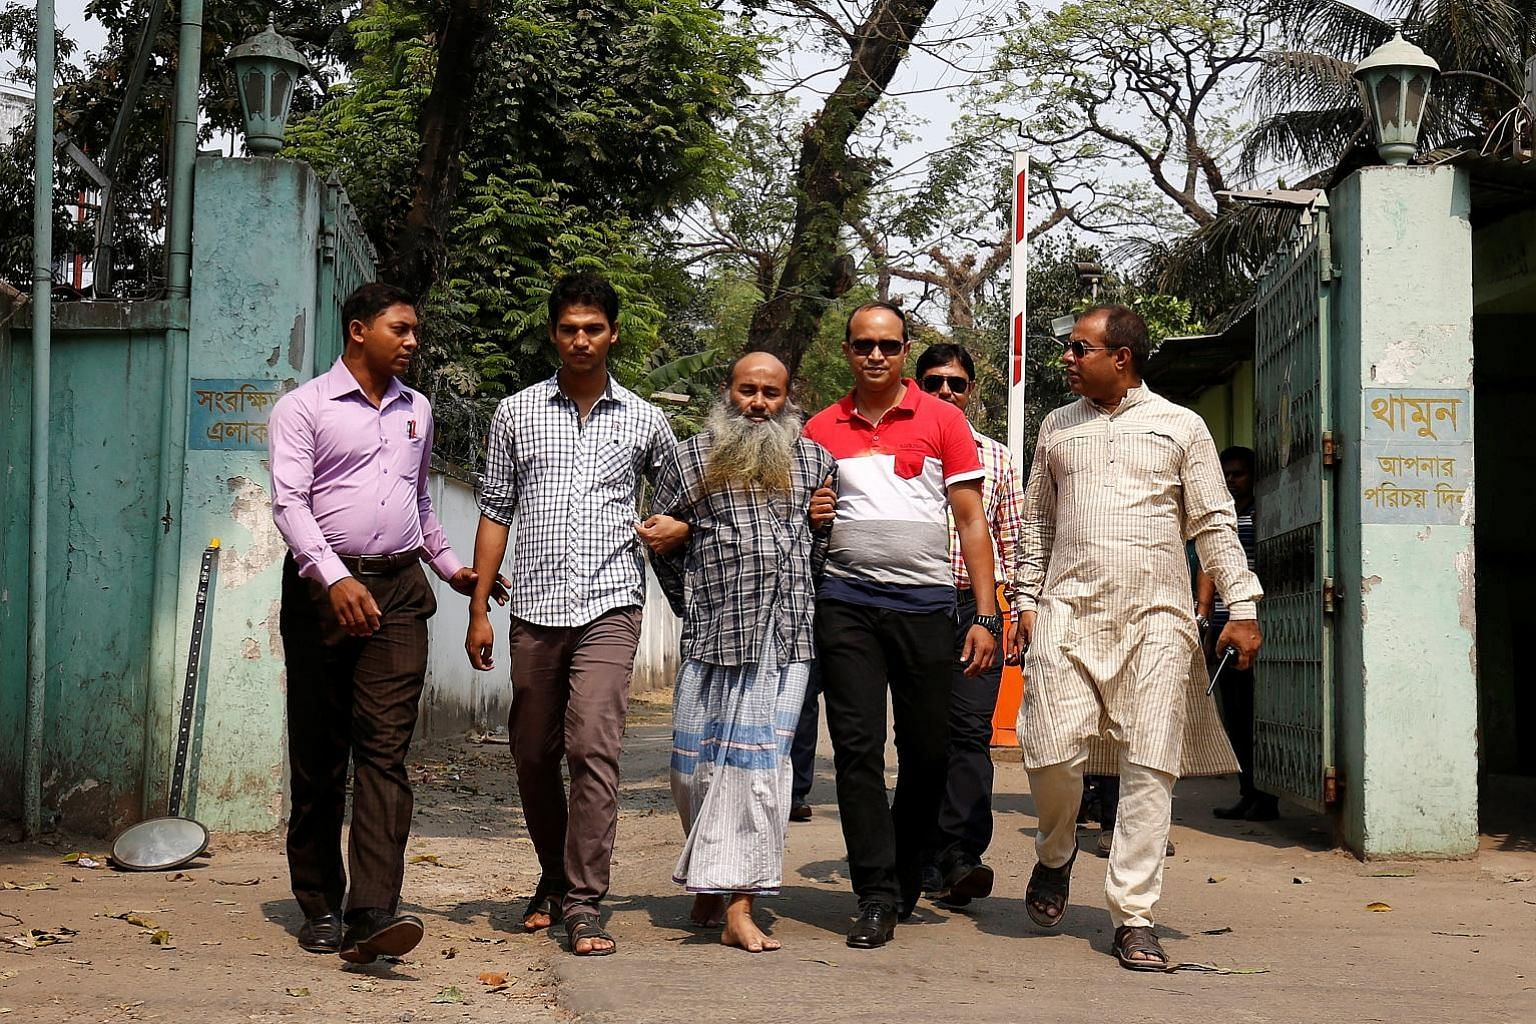 Security personnel with Maolana Abul Kashem, spiritual leader of the banned Jamayetul Mujahideen Bangladesh group, yesterday. Police say Kashem had met the alleged mastermind of the Dhaka cafe attack, Tamim Chowdhury, several times.